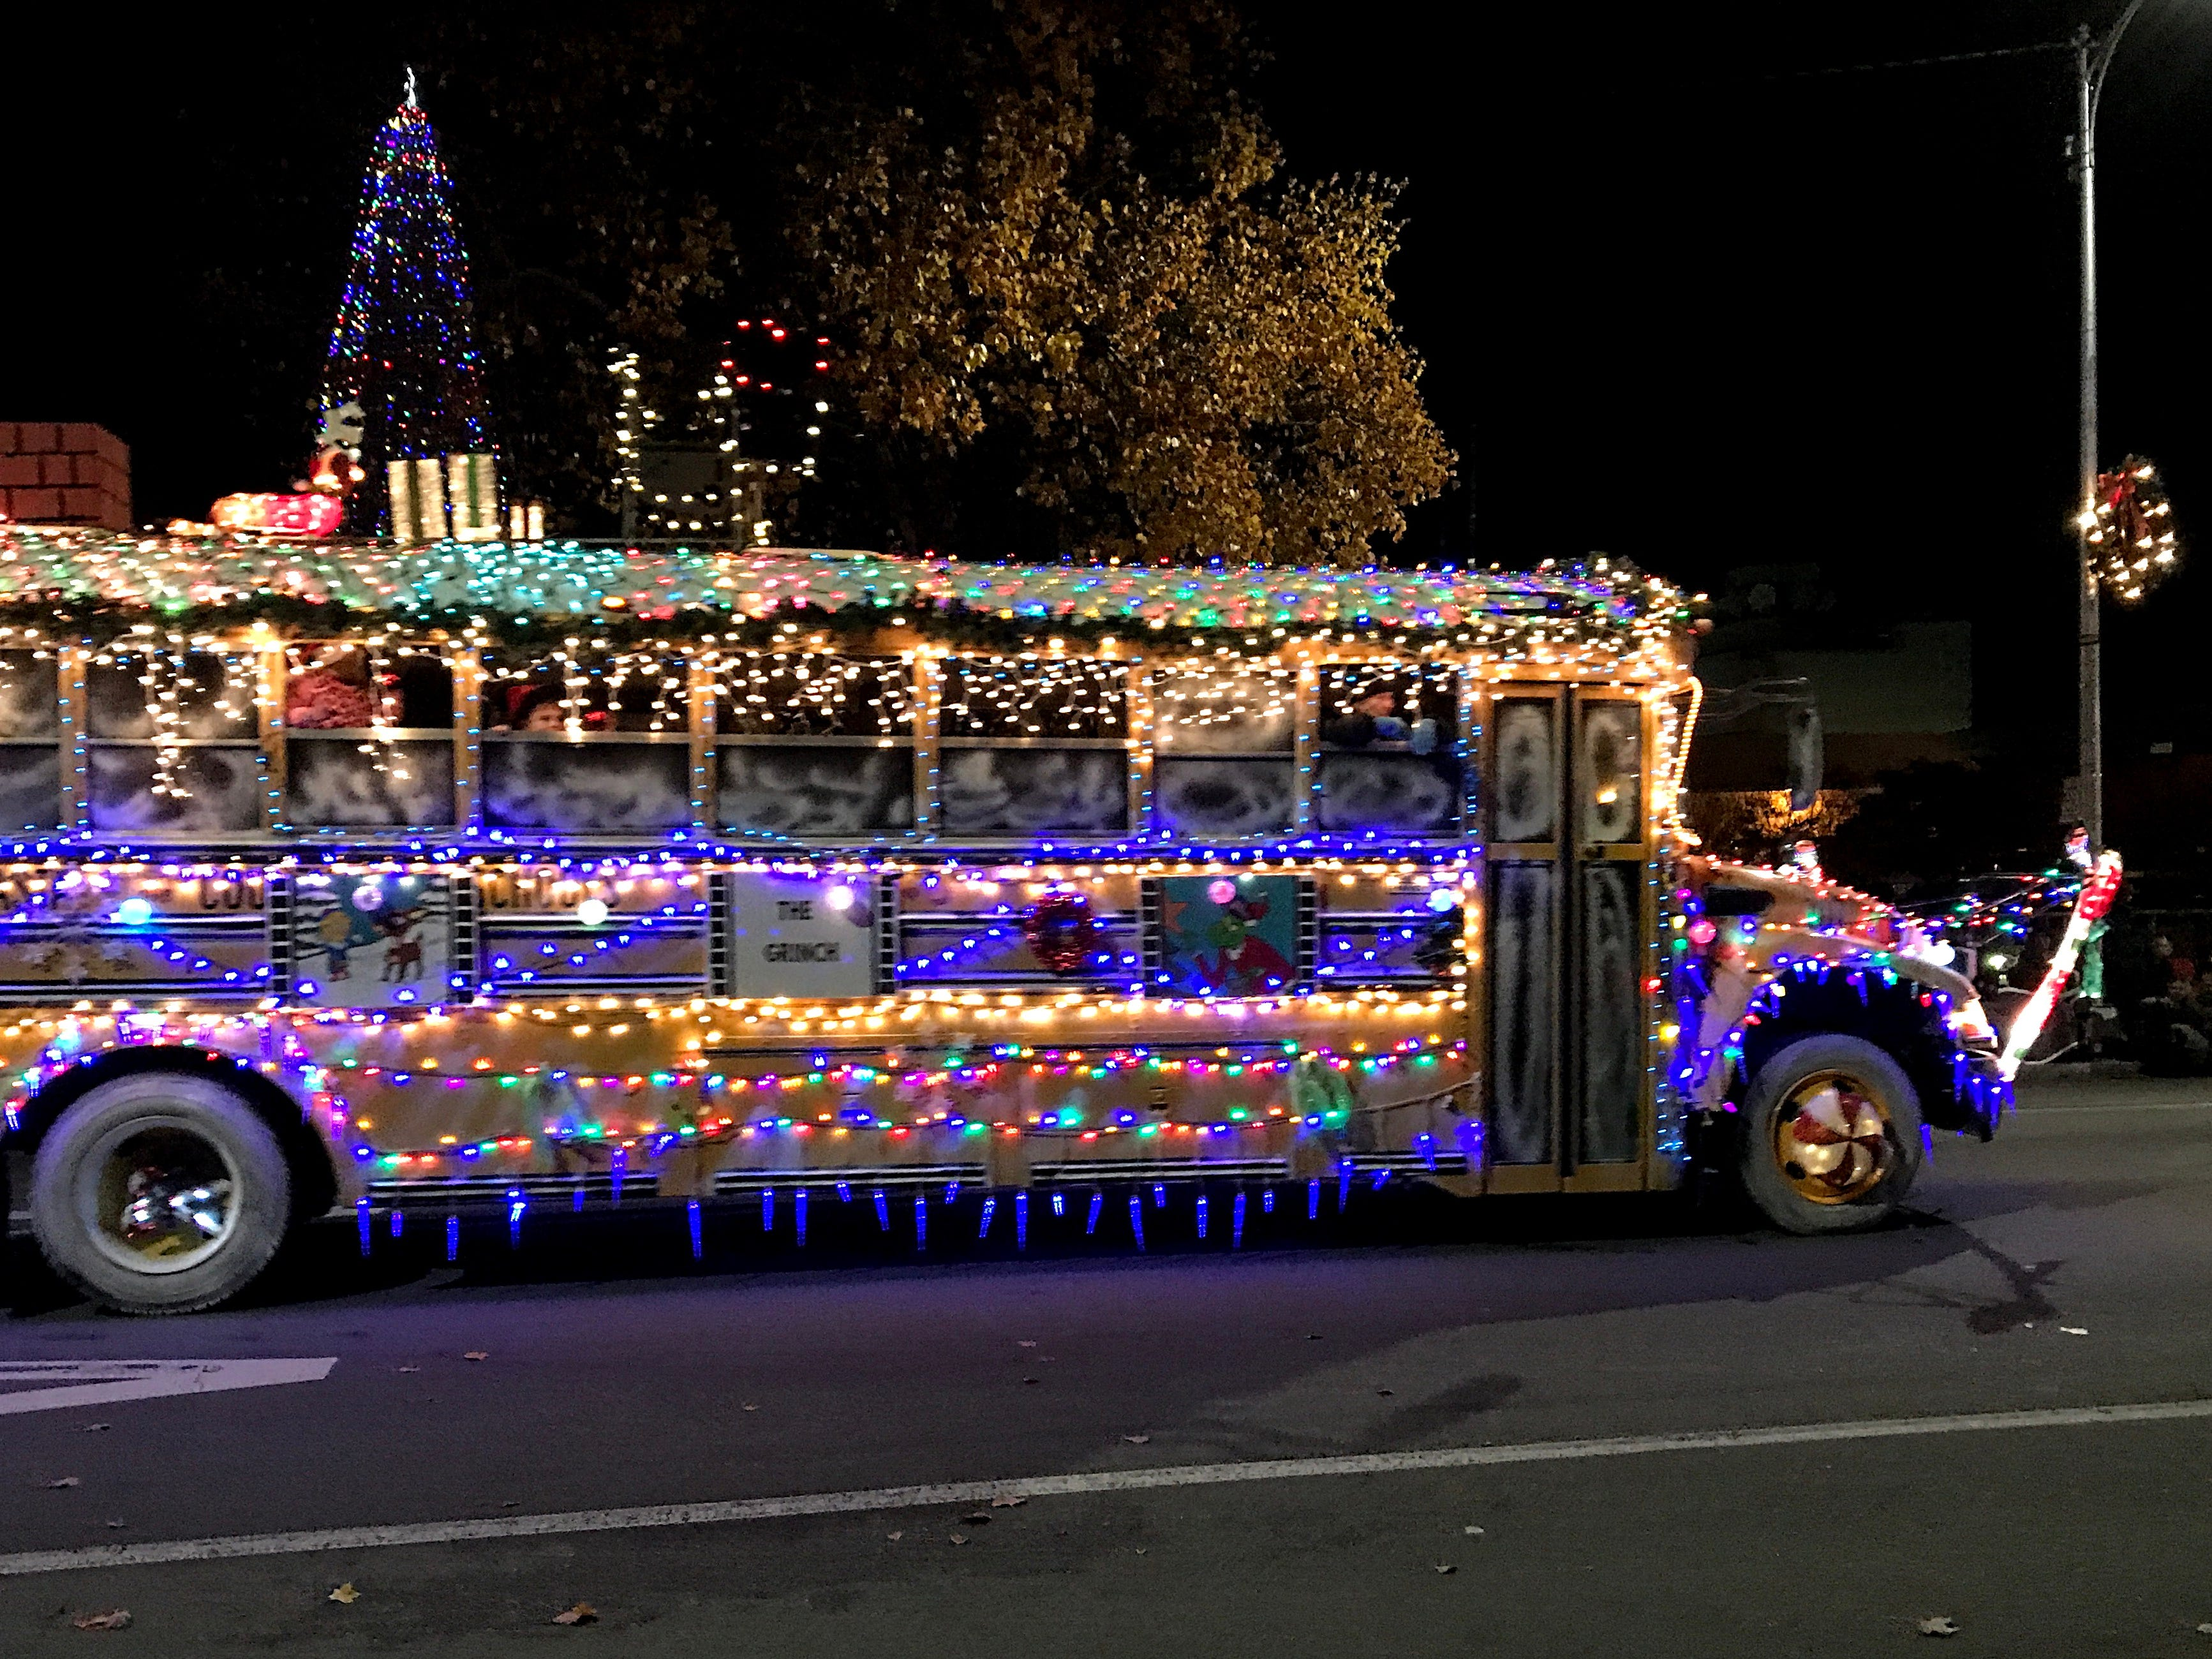 A float from the 2018 Lighted Christmas Parade in downtown Redding with the city's Christmas tree standing in the background.